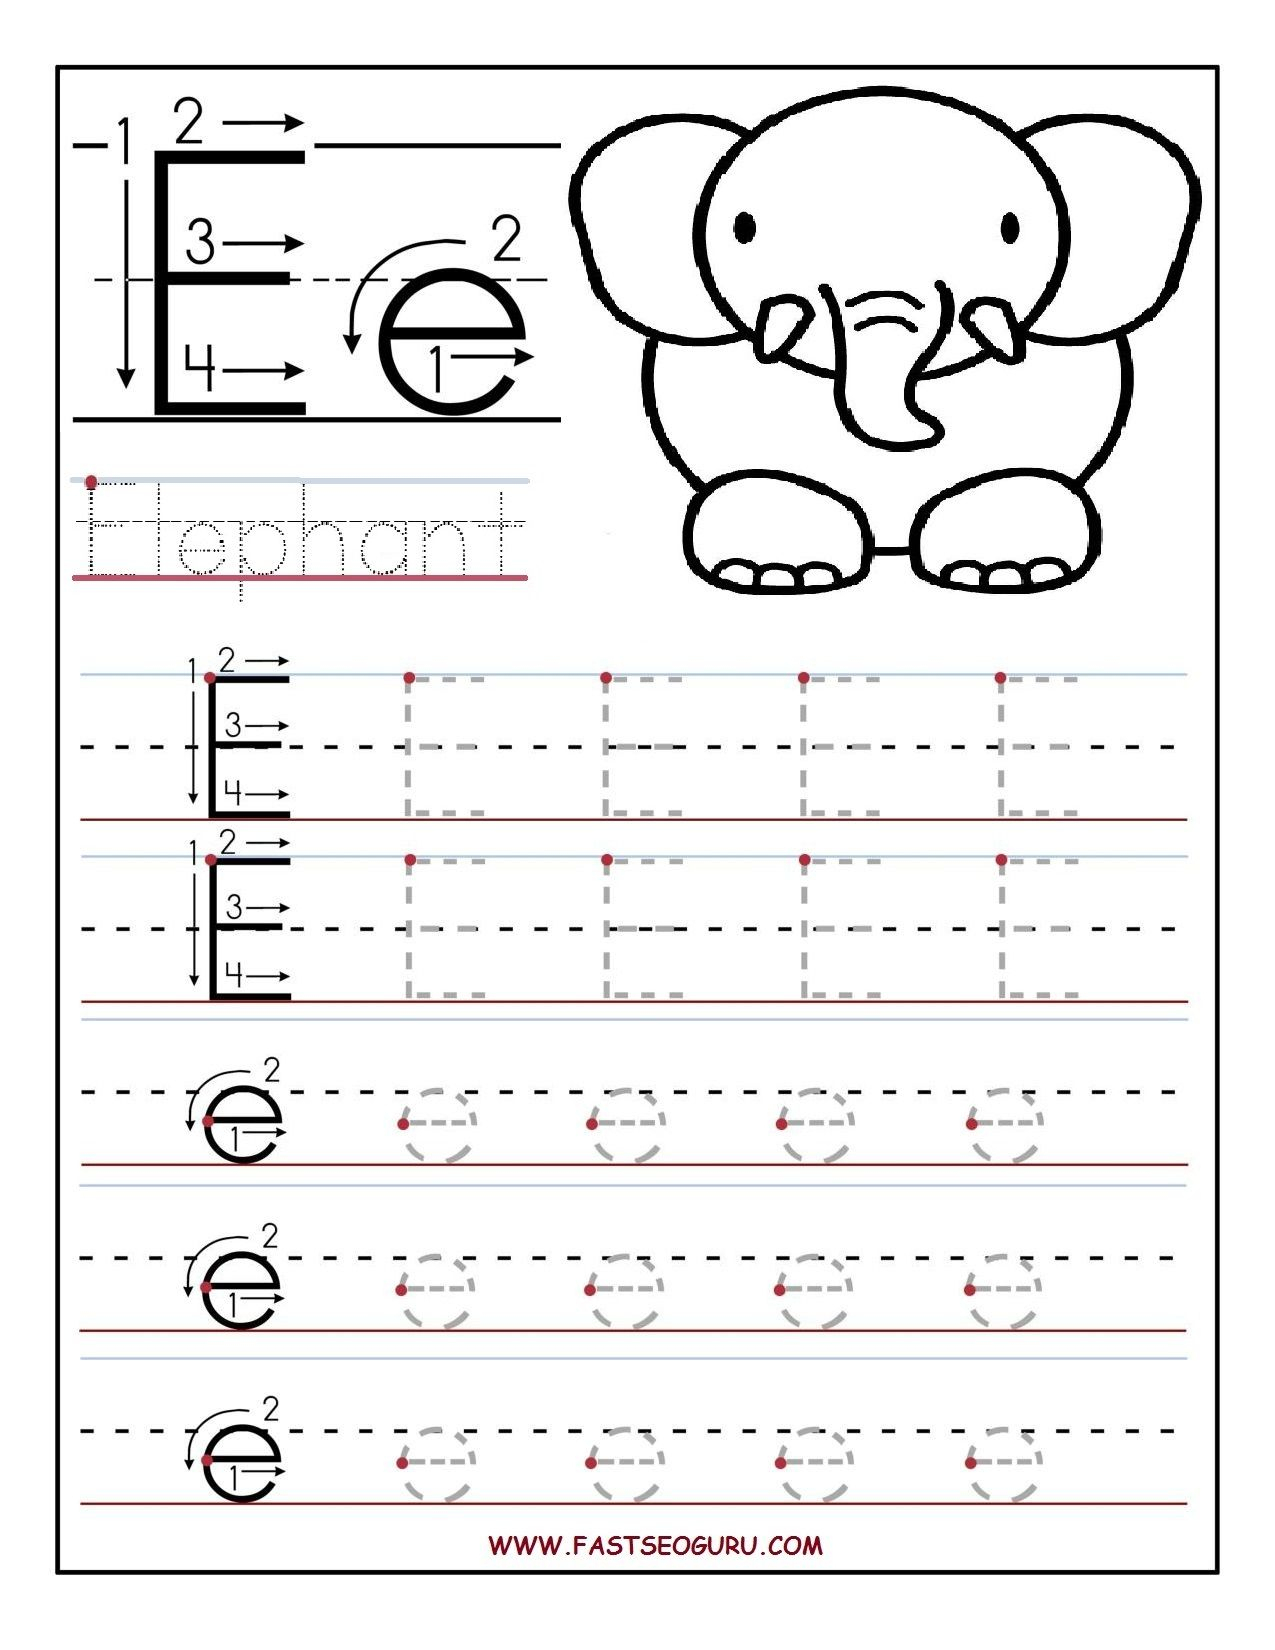 Pinvilfran Gason On Decor | Letter E Worksheets, Letter Tracing | Letter E Printable Worksheets